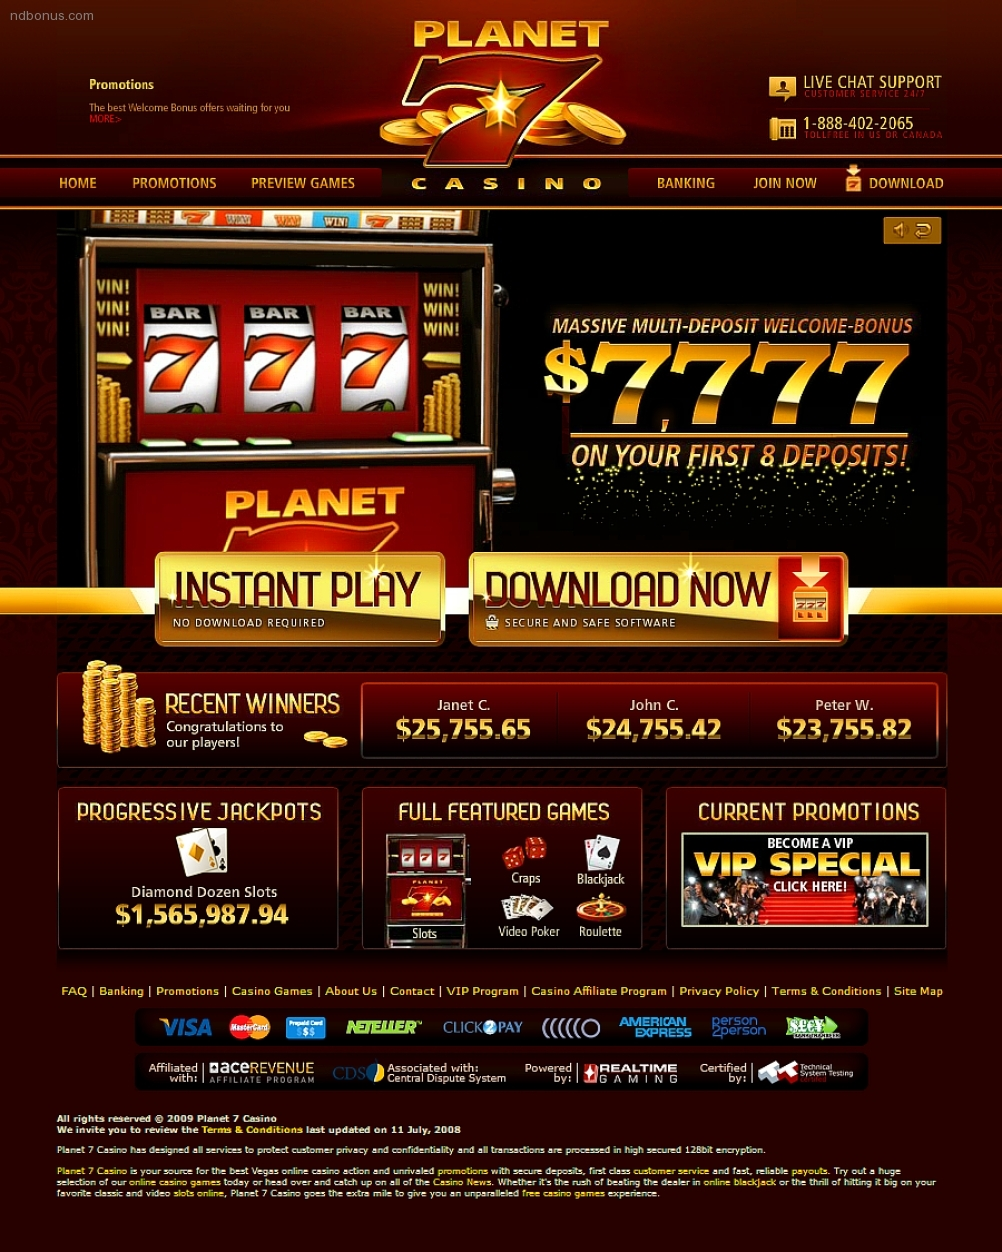 €666 FREE CASINO CHIP at Sloto'Cash